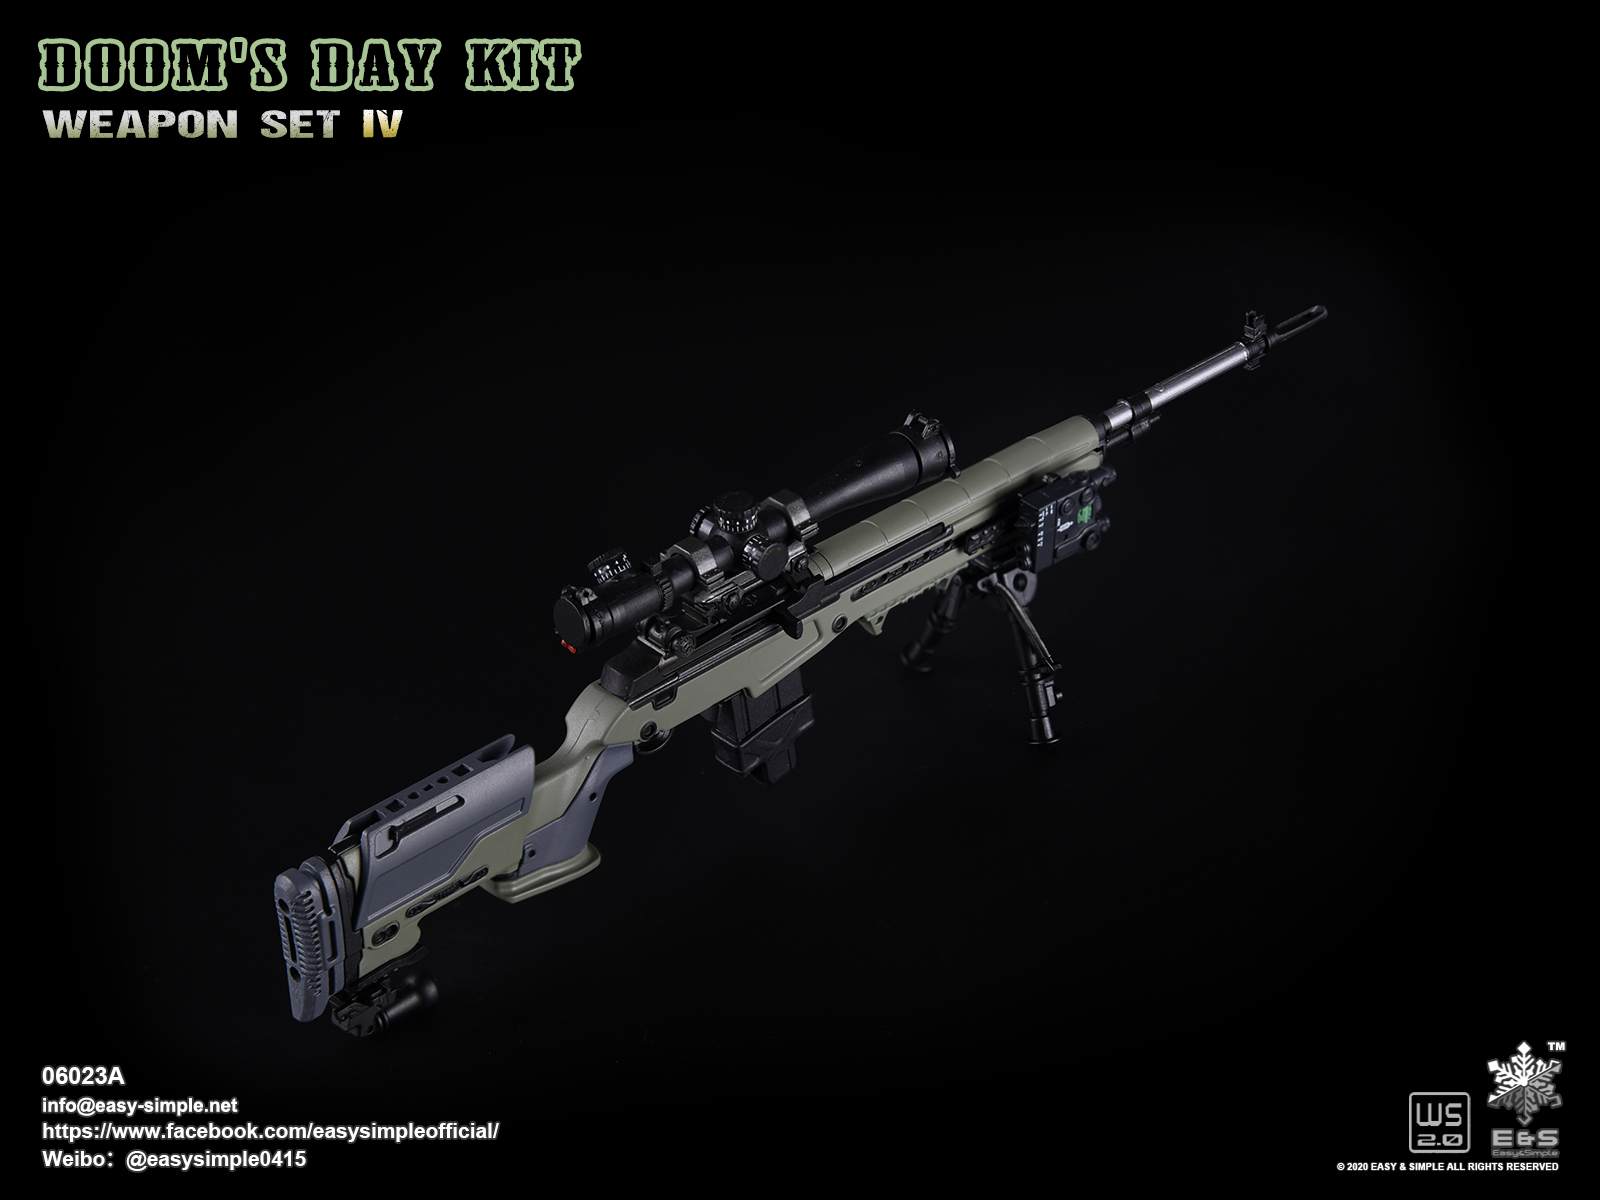 --M14 Rifle A19-49 1//6 scale es 06023 Doom/'s Day Kit IV